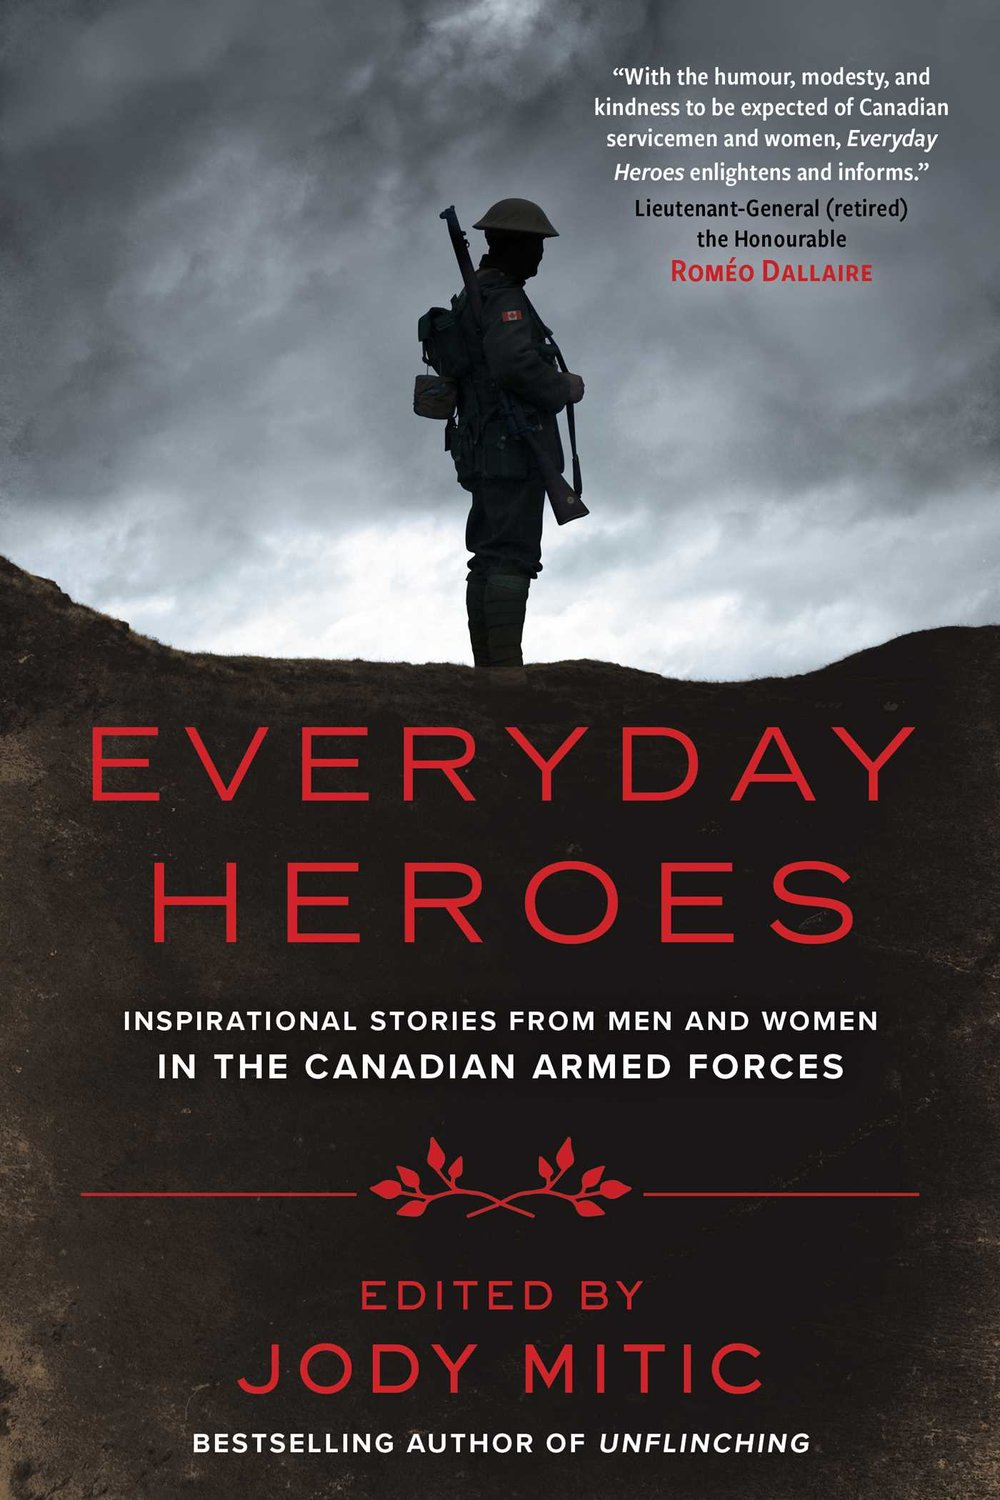 Everyday Heroes, Jody Mitic - In this moving collection of first-person accounts, the men and women of the Canadian Armed Forces take us inside life in the military and share their personal stories of courage, perseverance, and sacrifice.What does it mean to serve? Bestselling author Jody Mitic brings together veterans and active military personnel from across Canada to tell us, in their own words, what it means to answer the call of duty.